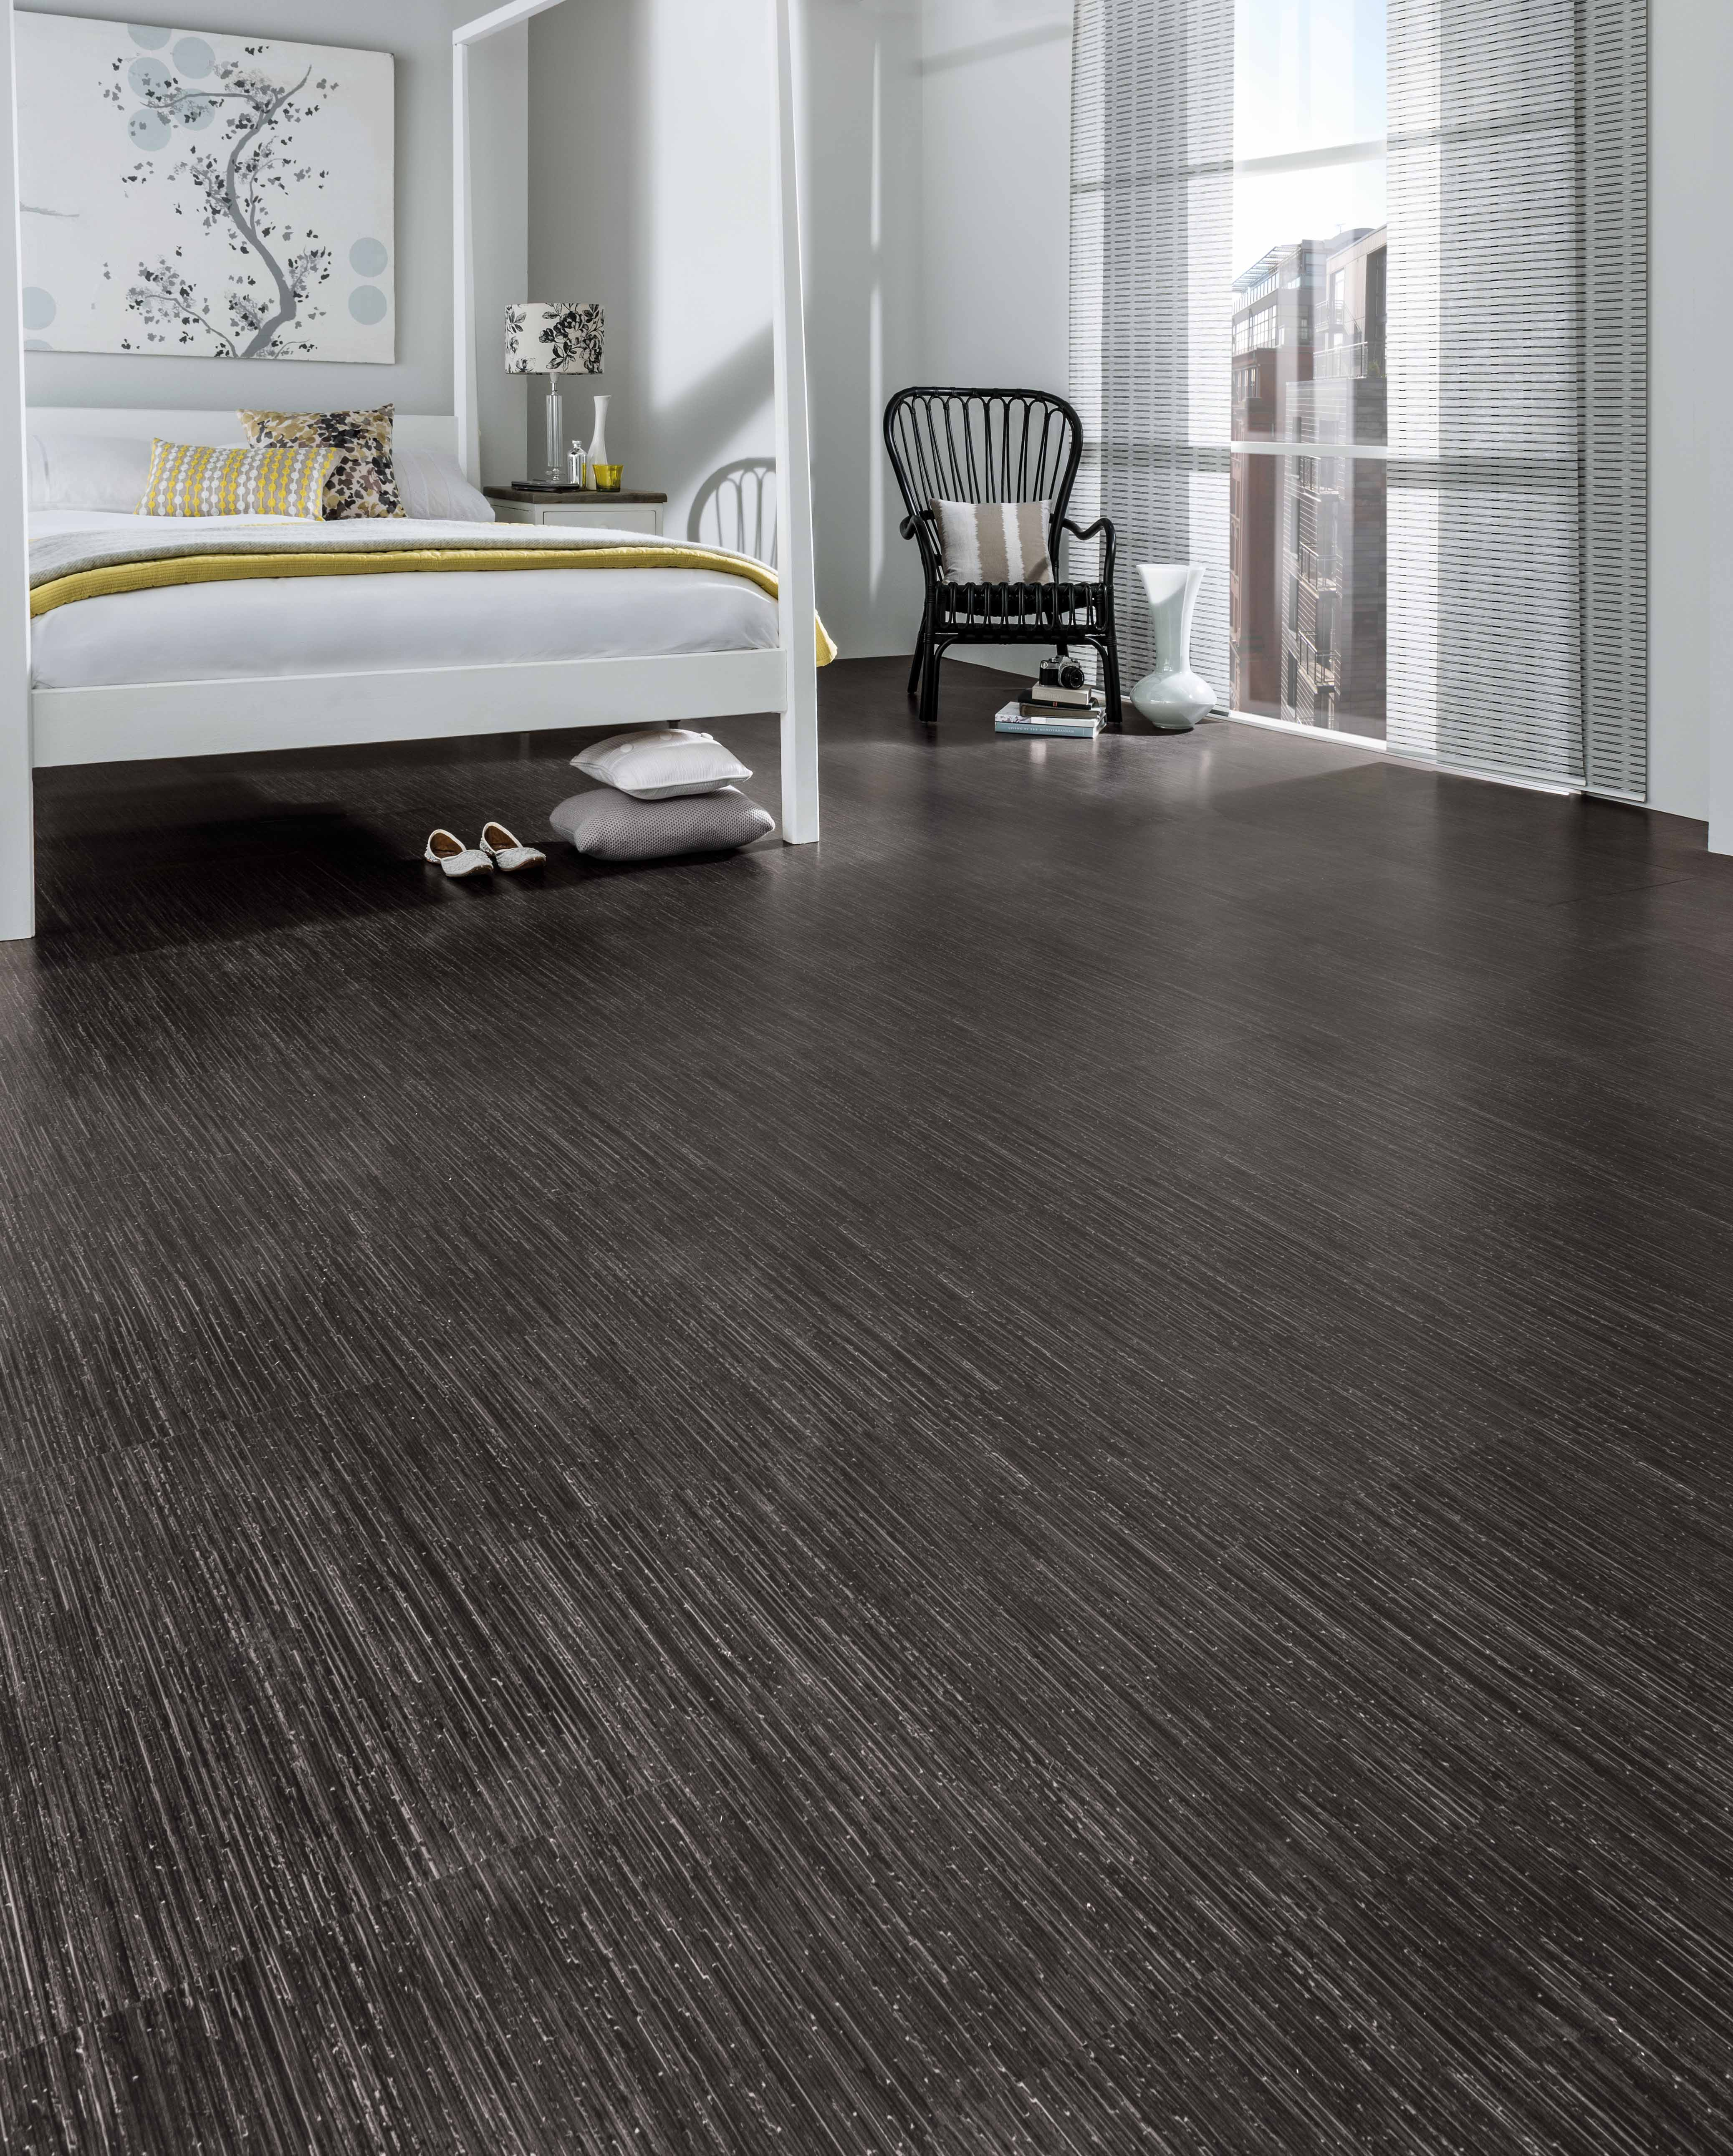 your install why is to floor purchase send blog bathrooms they for installation you every choice karndean when can us supply we flooring so a register the choose directly no perfect and with